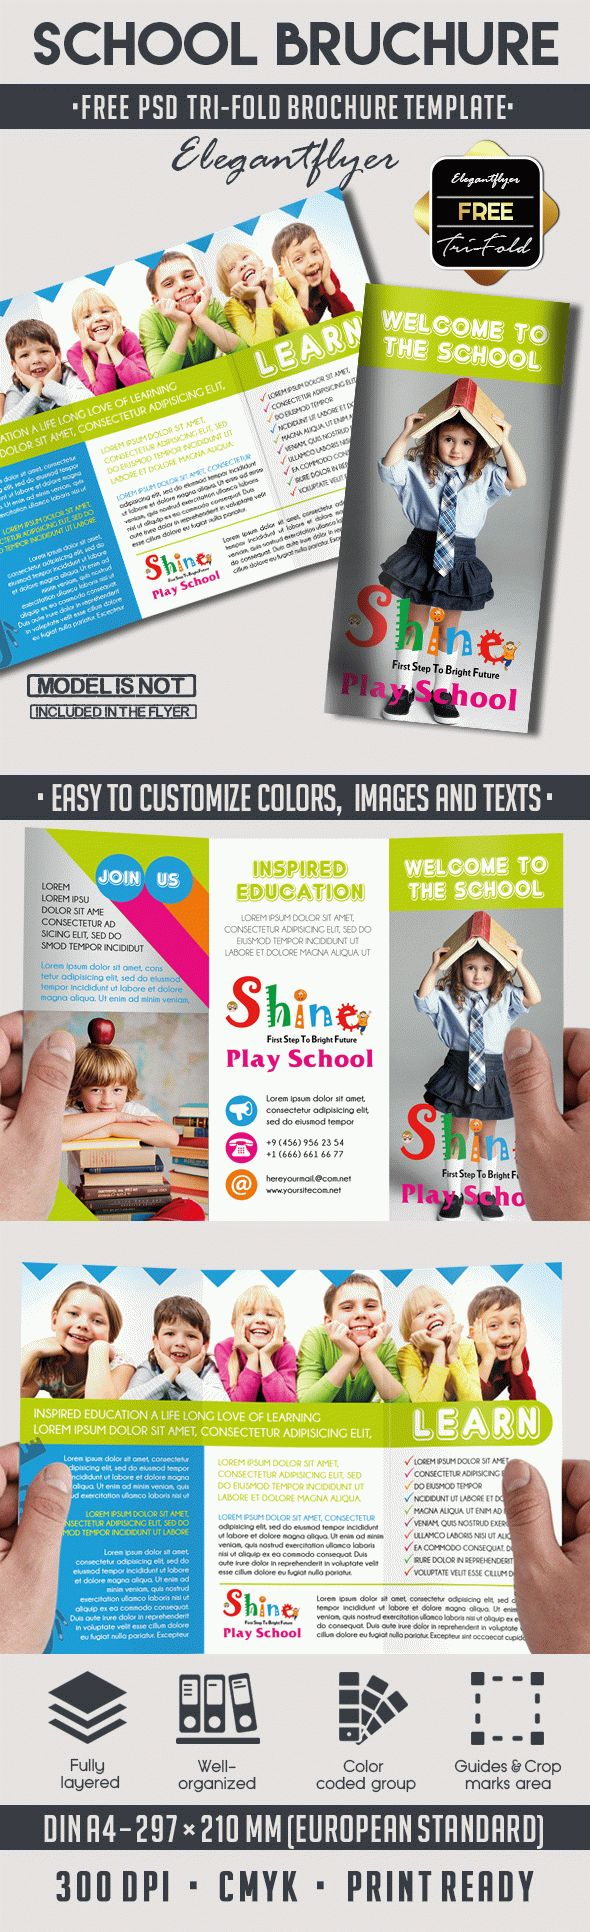 free brochure design templates psd - school free psd tri fold psd brochure template by